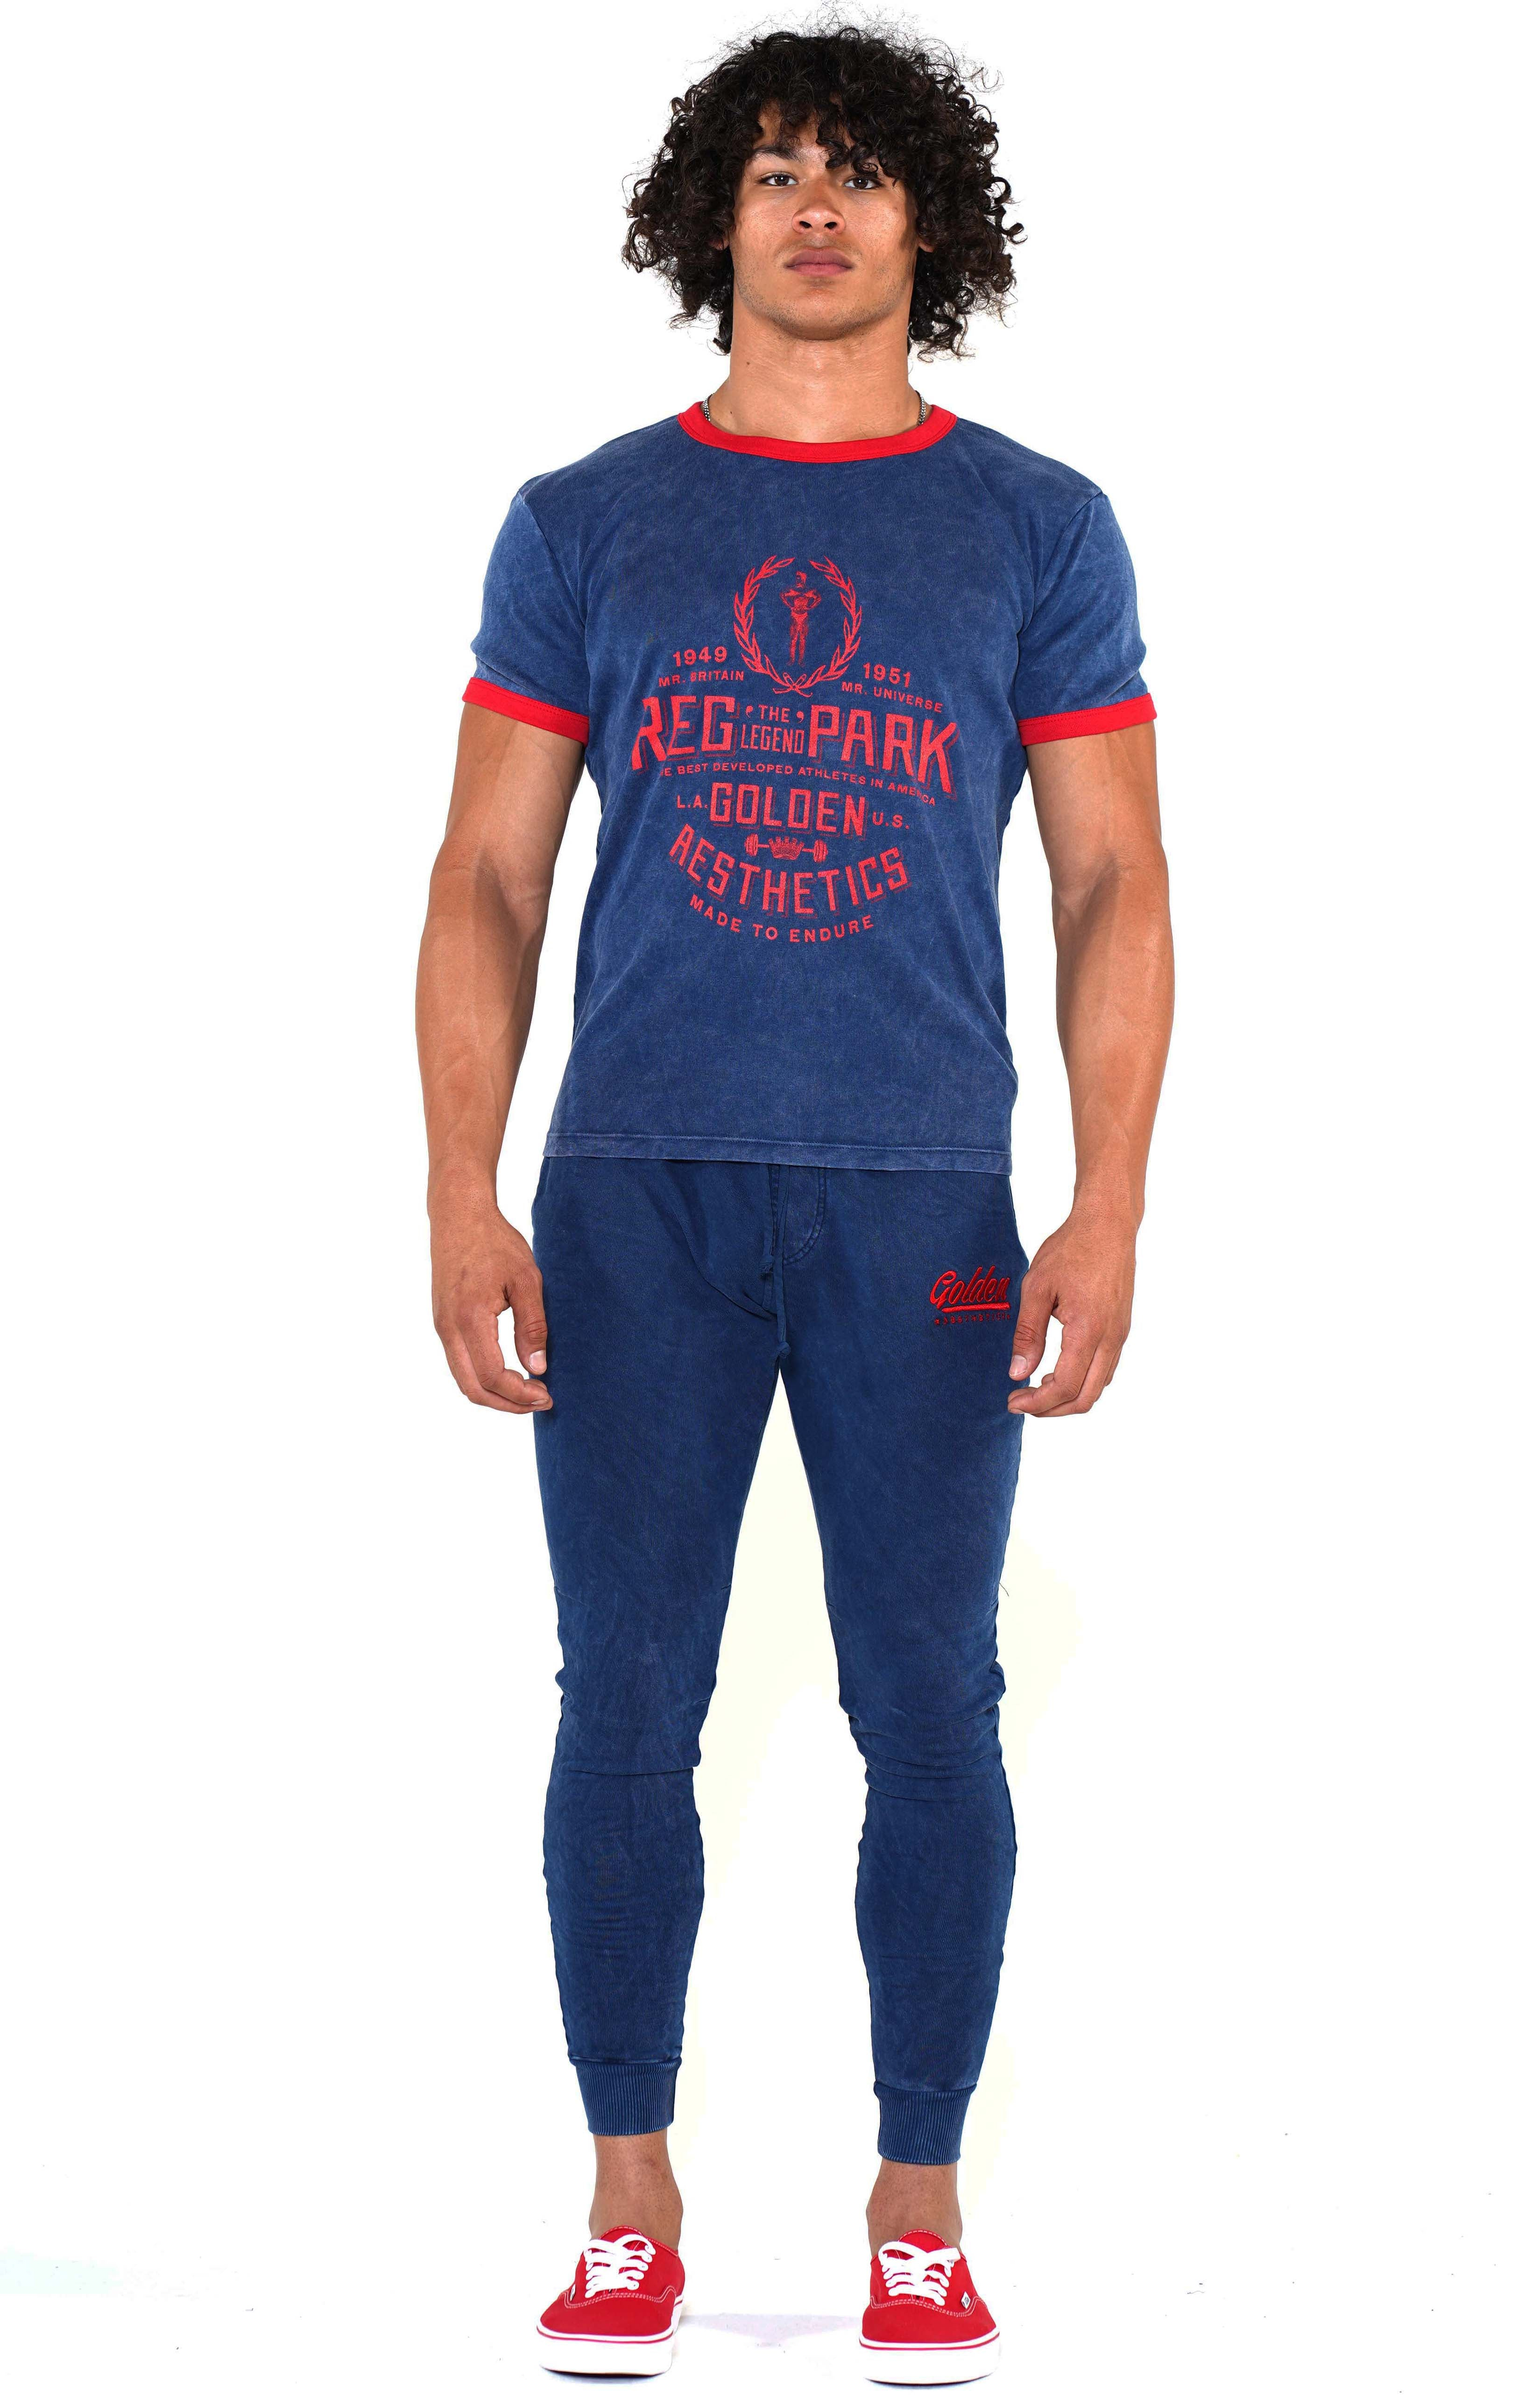 Men's Navy/Red Reg Park Ringer T-Shirt - Golden Aesthetics